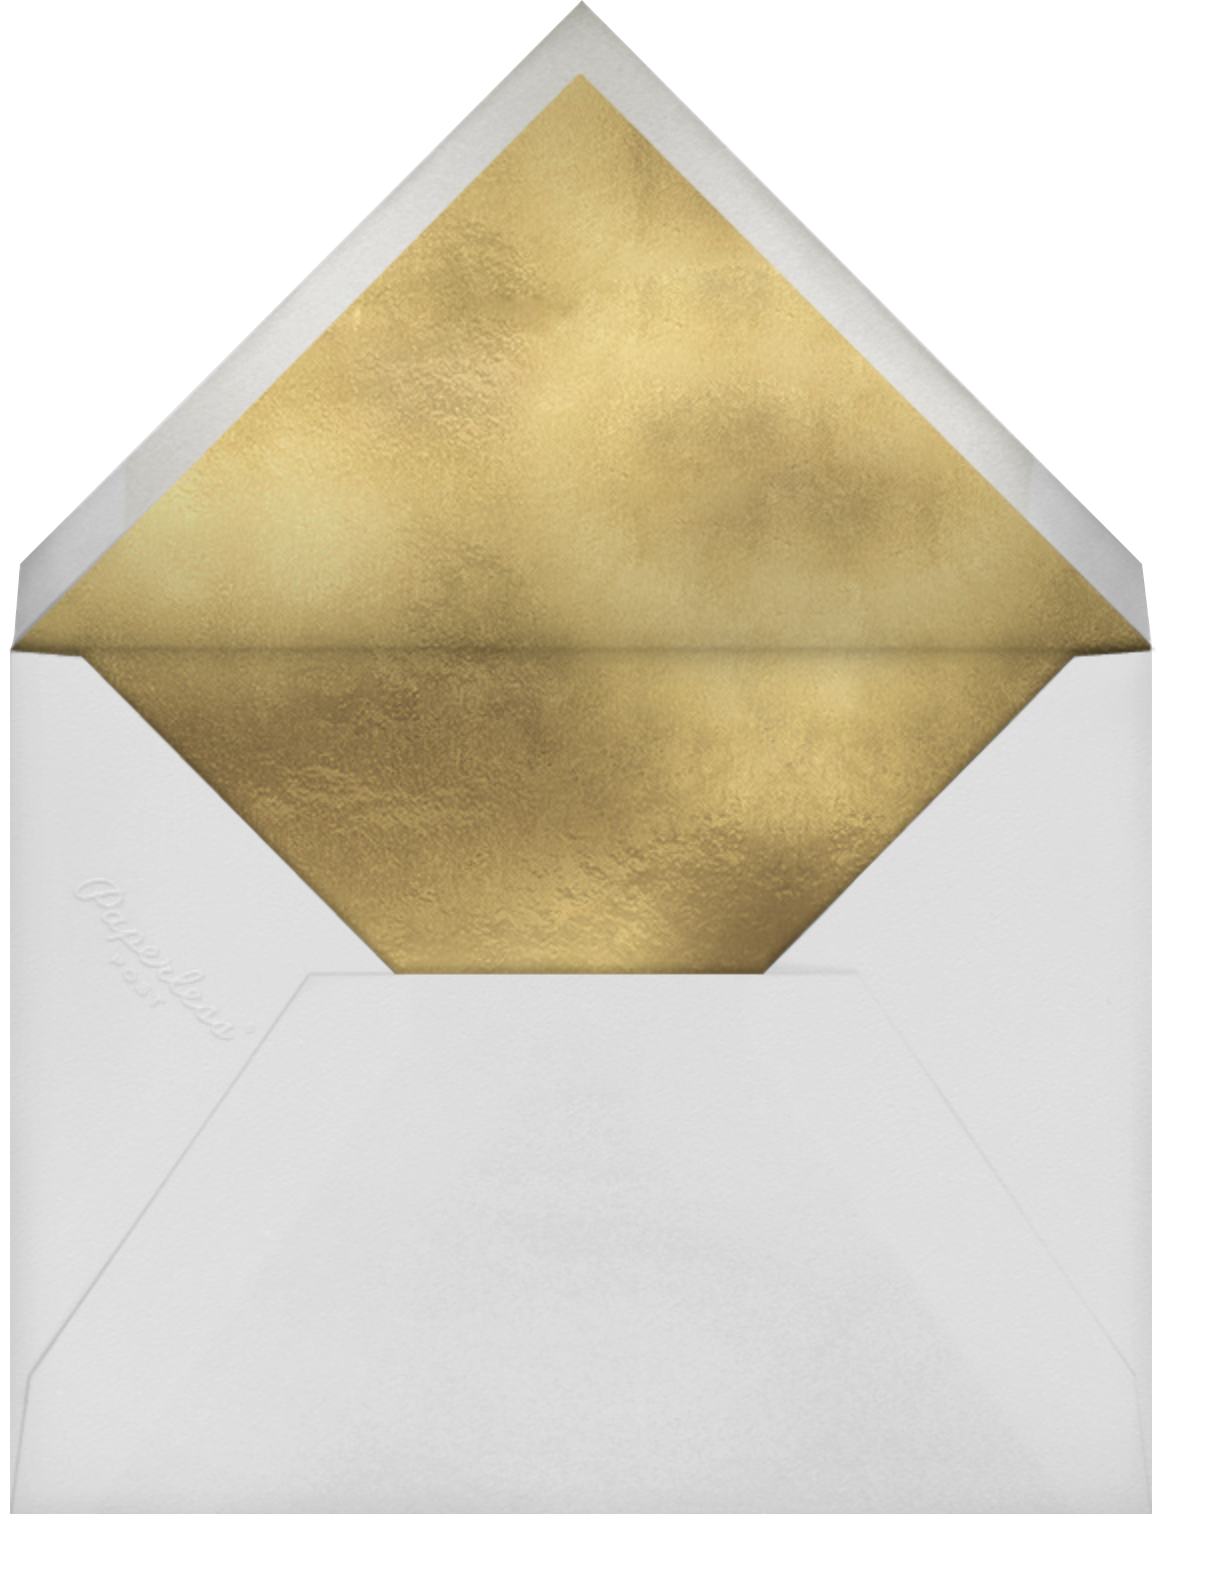 Belle Boulevard (Invitation) - Gold - kate spade new york - All - envelope back